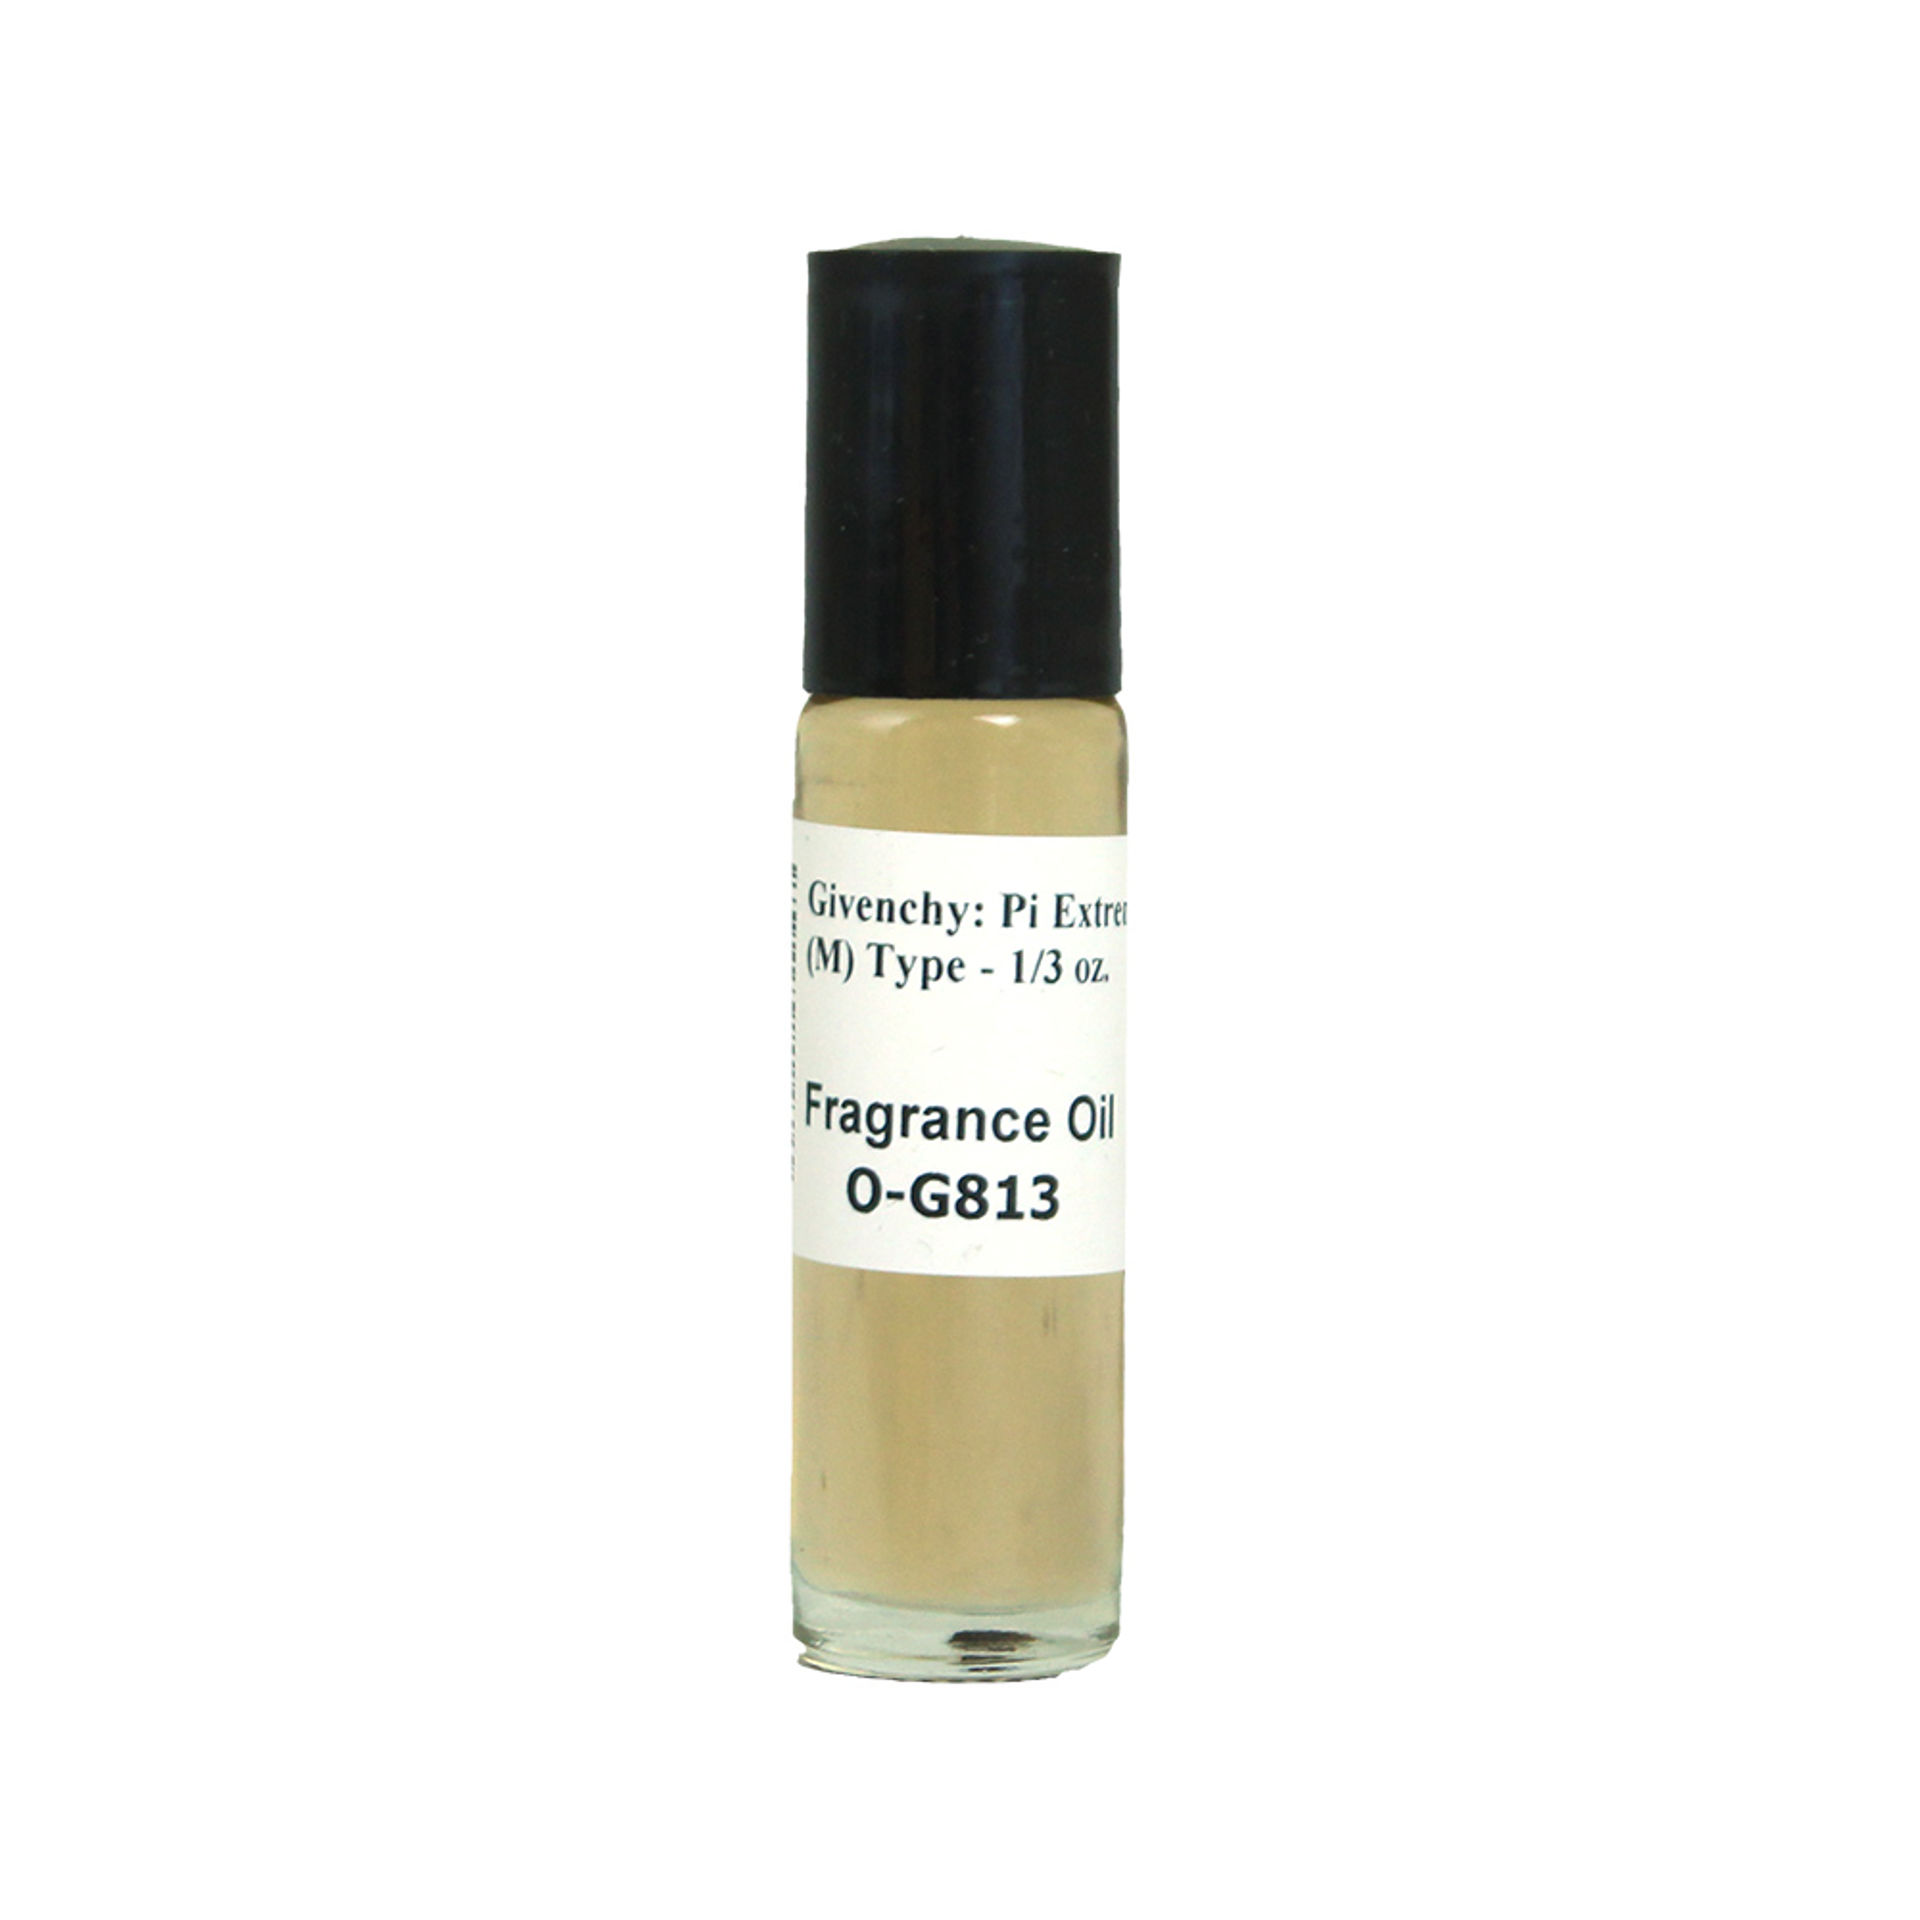 Picture of Givenchy: Pi Extreme (M) Type - 1/3 oz.